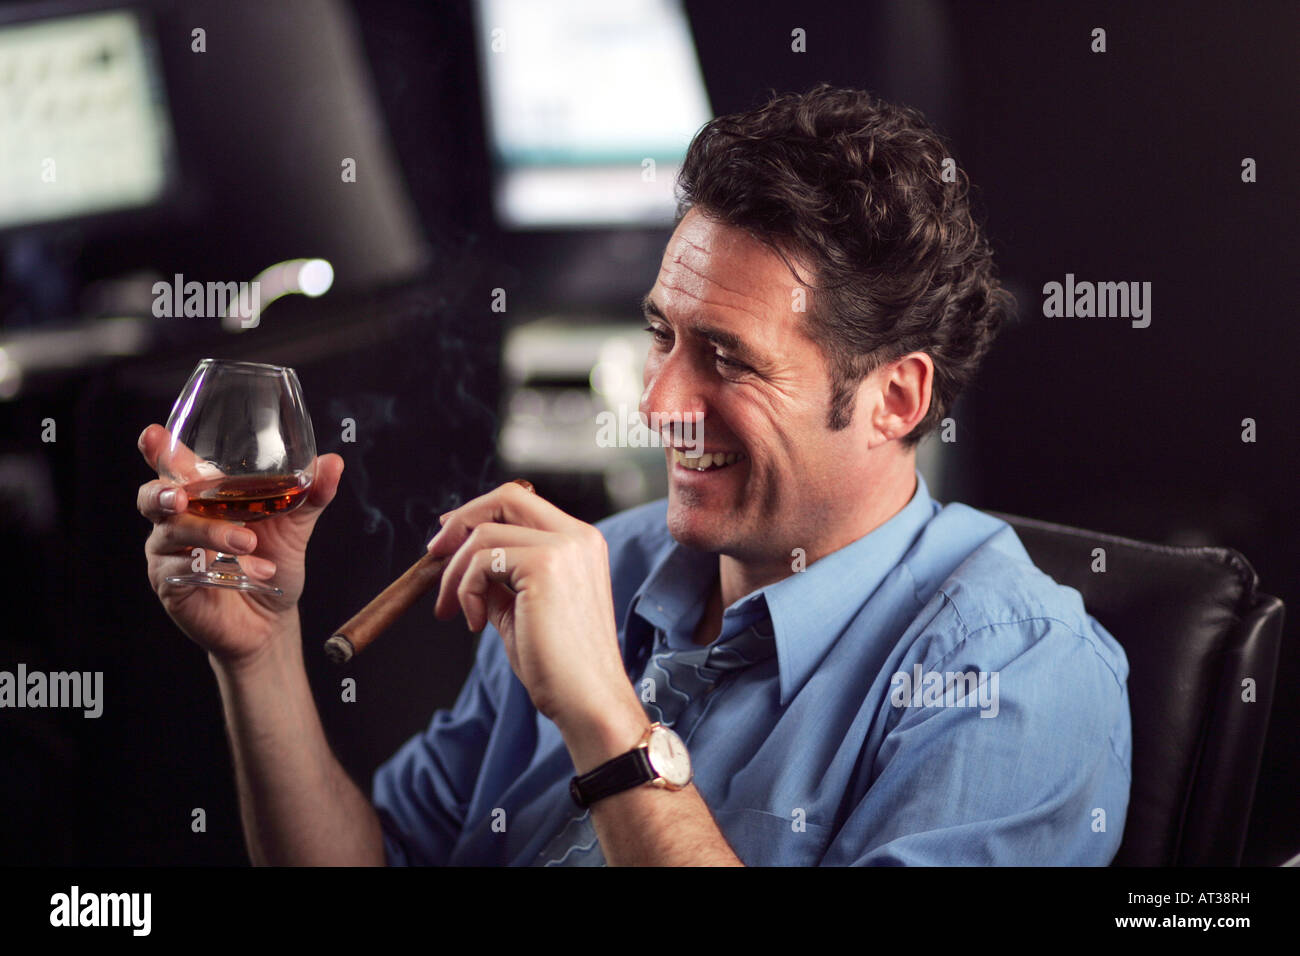 A Business Man Sitting At His Desk, Drinking Brandy And